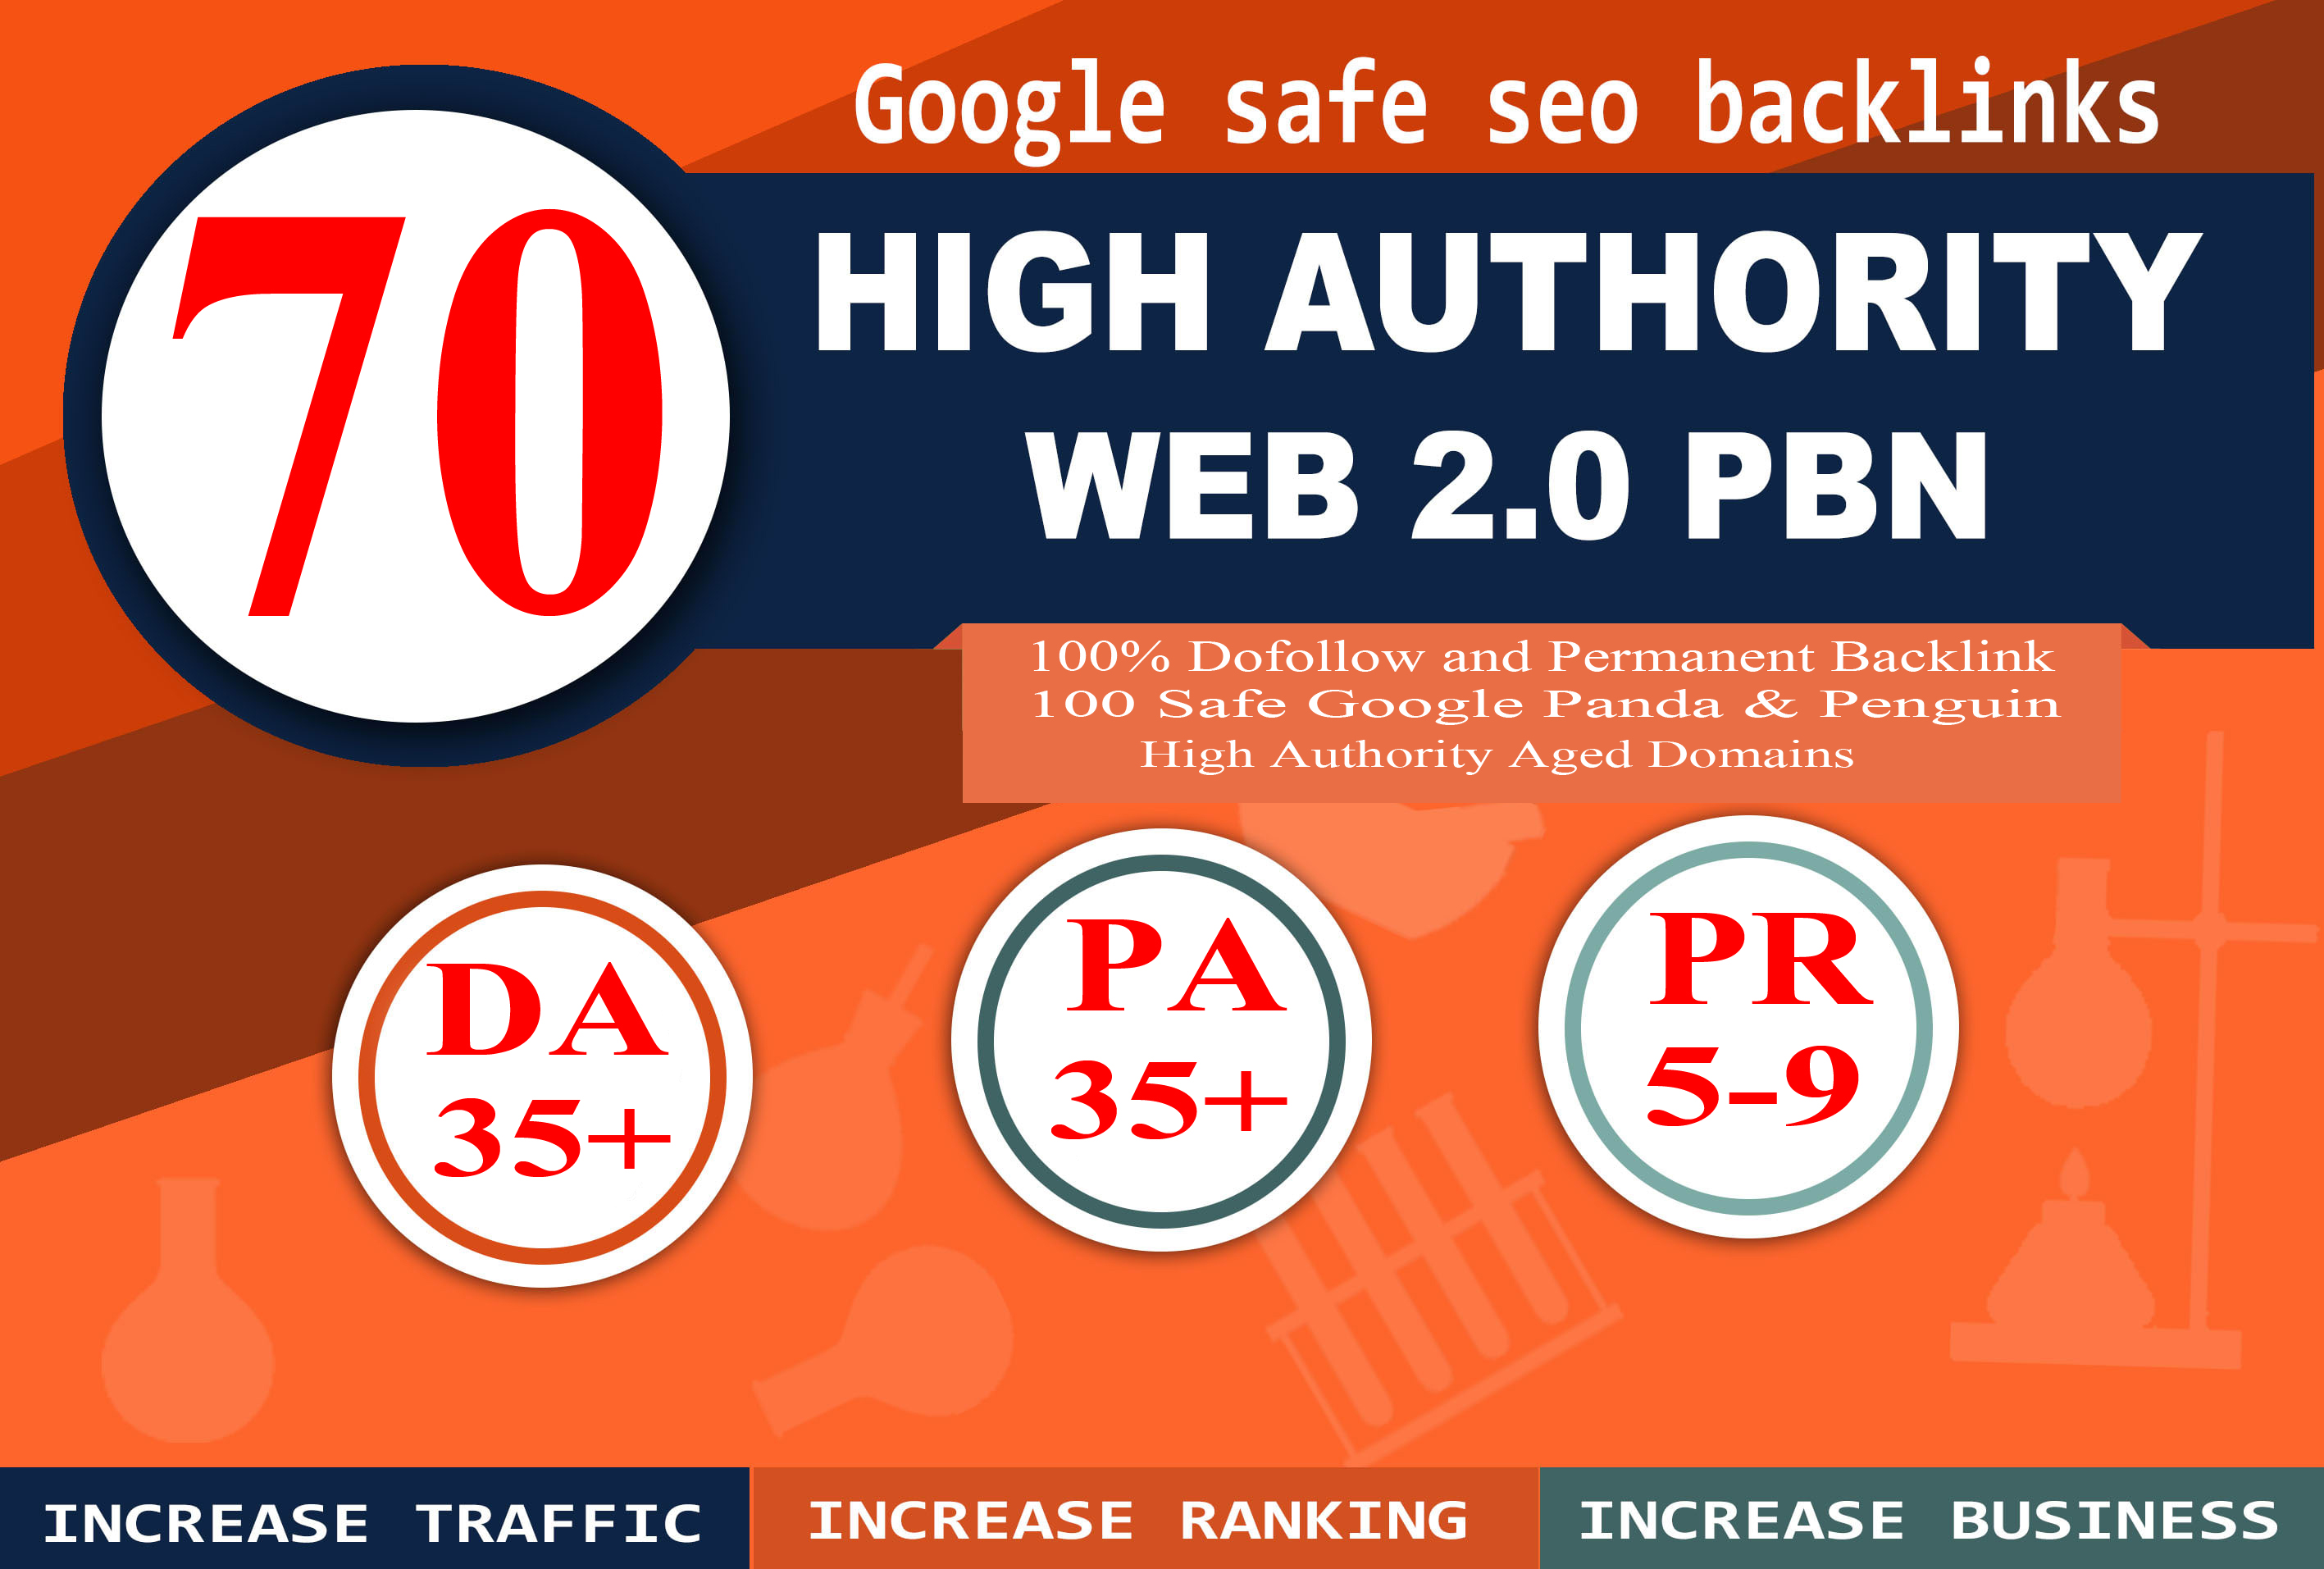 70+ Permanent PBN Backlinks Web2.0 With High TF CF DA PA Do-follow Links Homepage Unique website